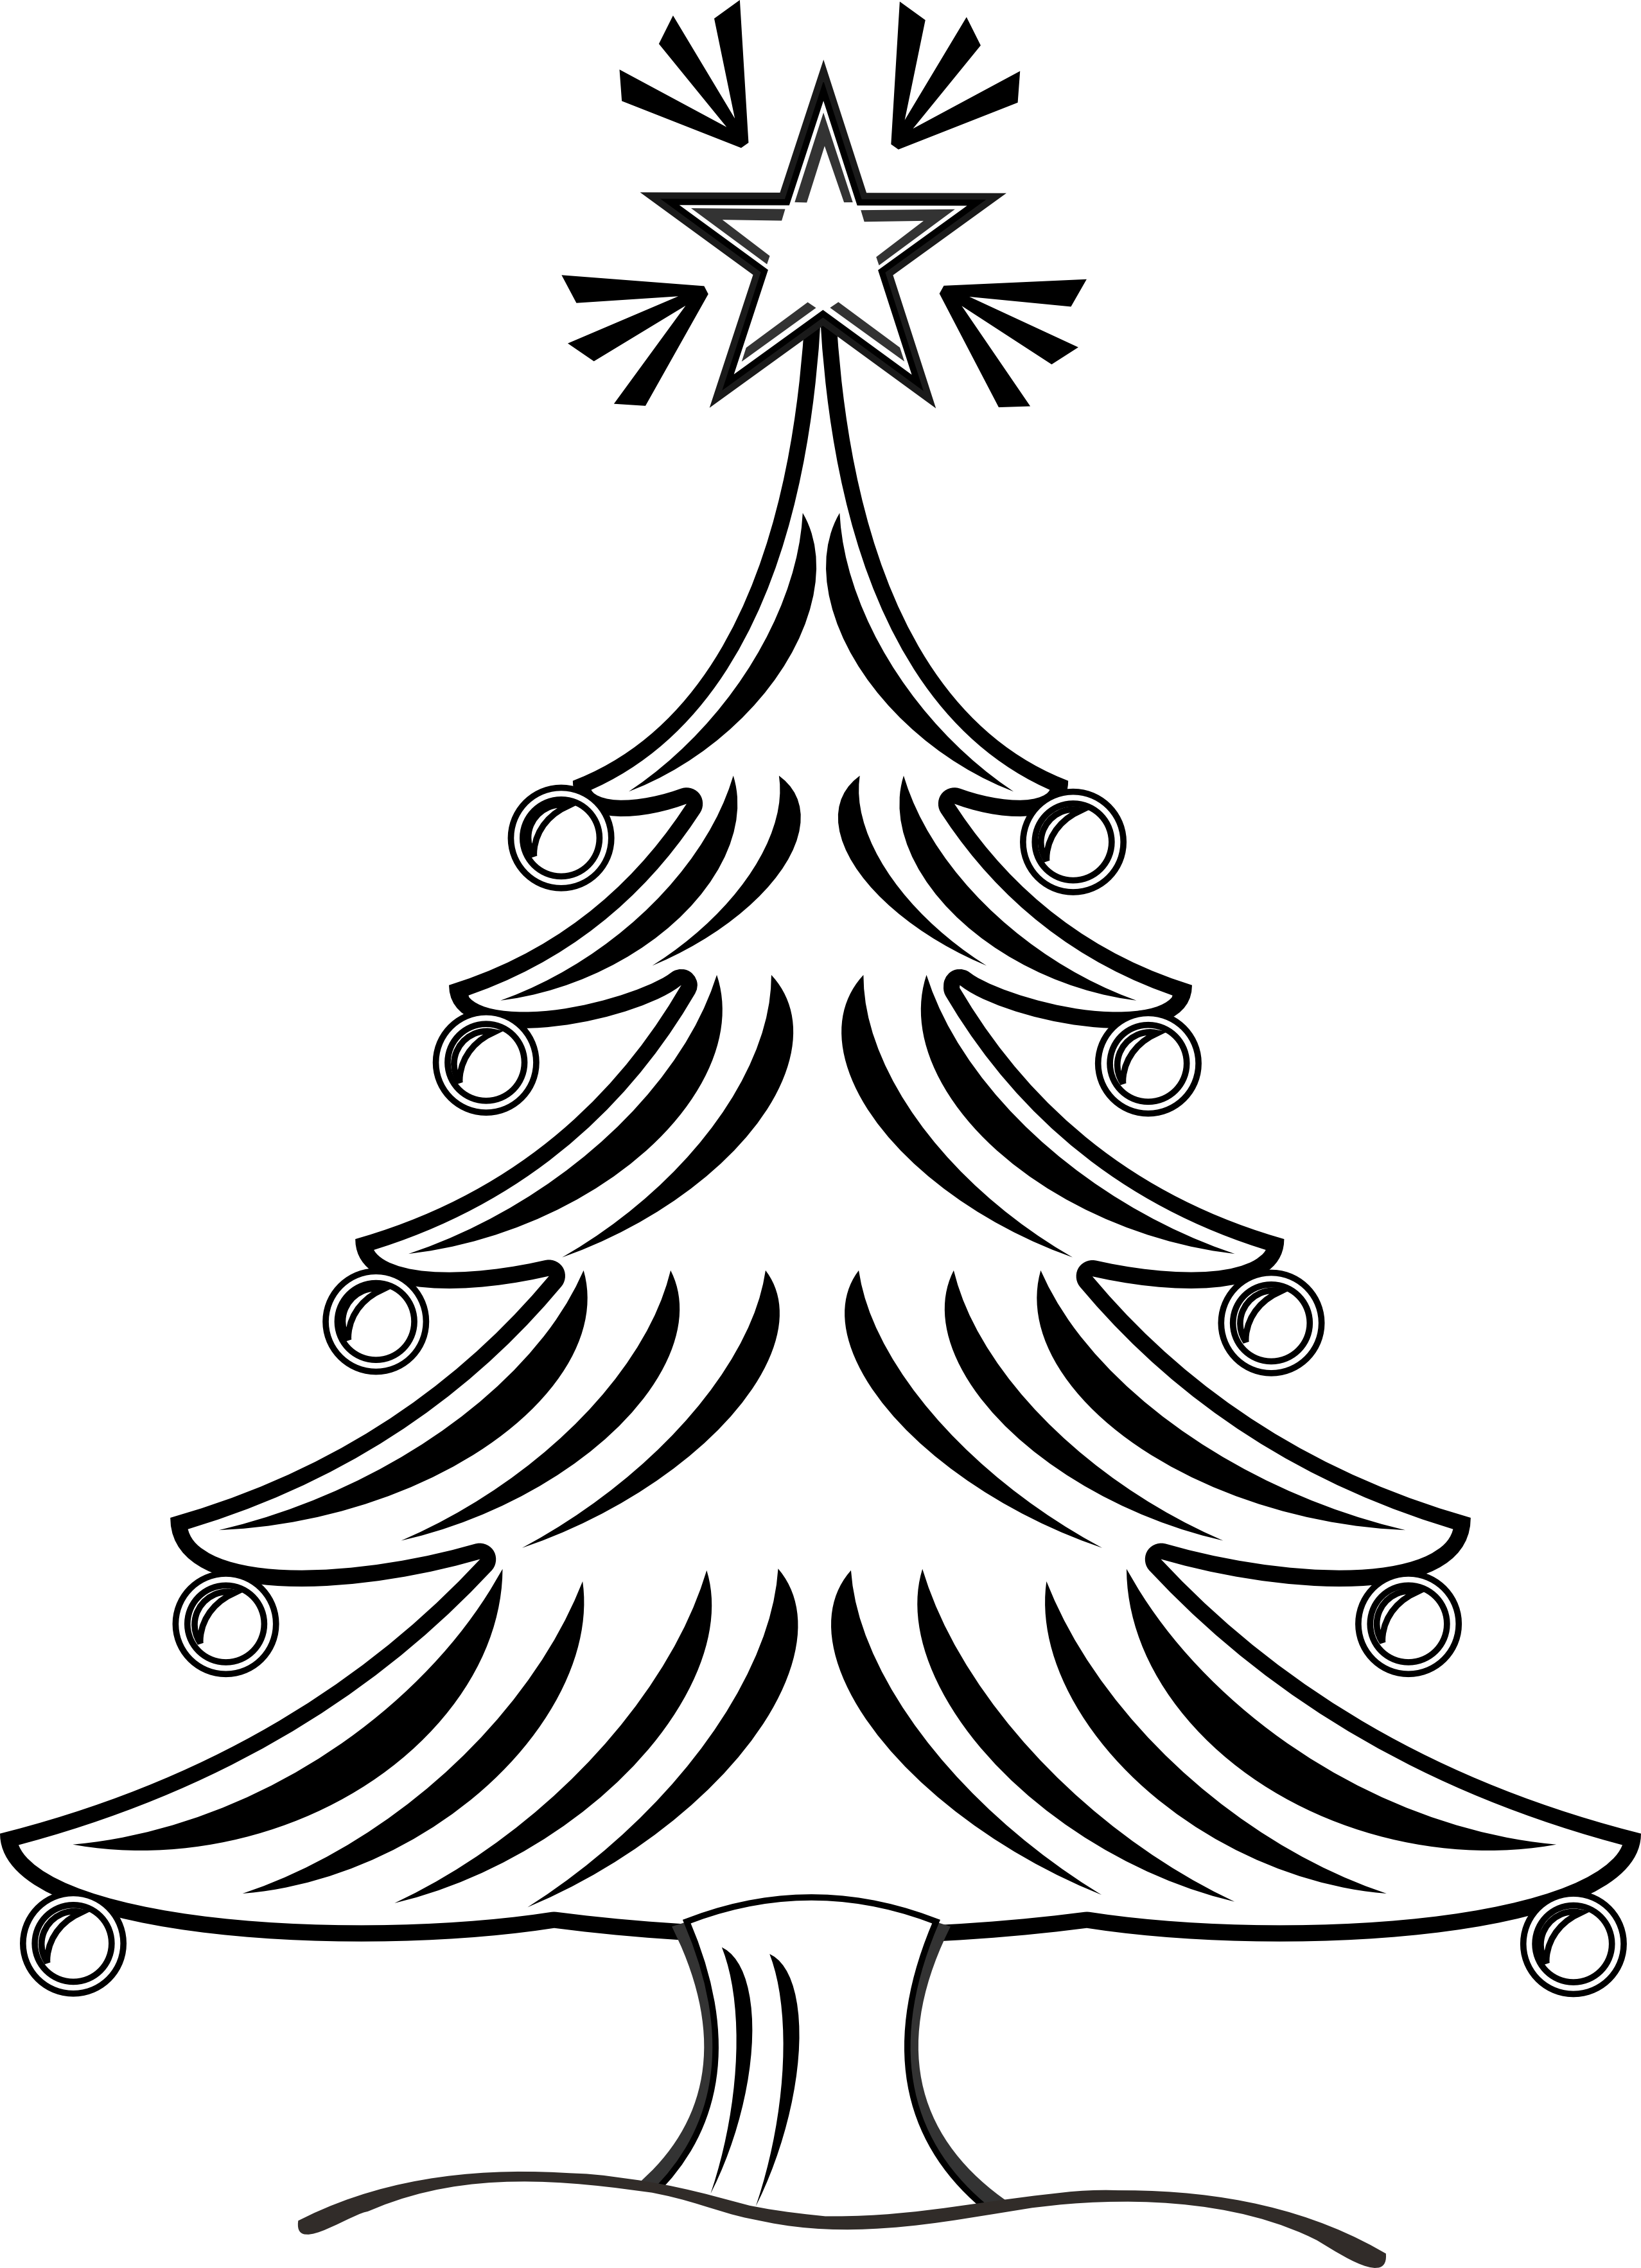 Free Christmas Line Drawing, Download Free Clip Art, Free Clip Art.